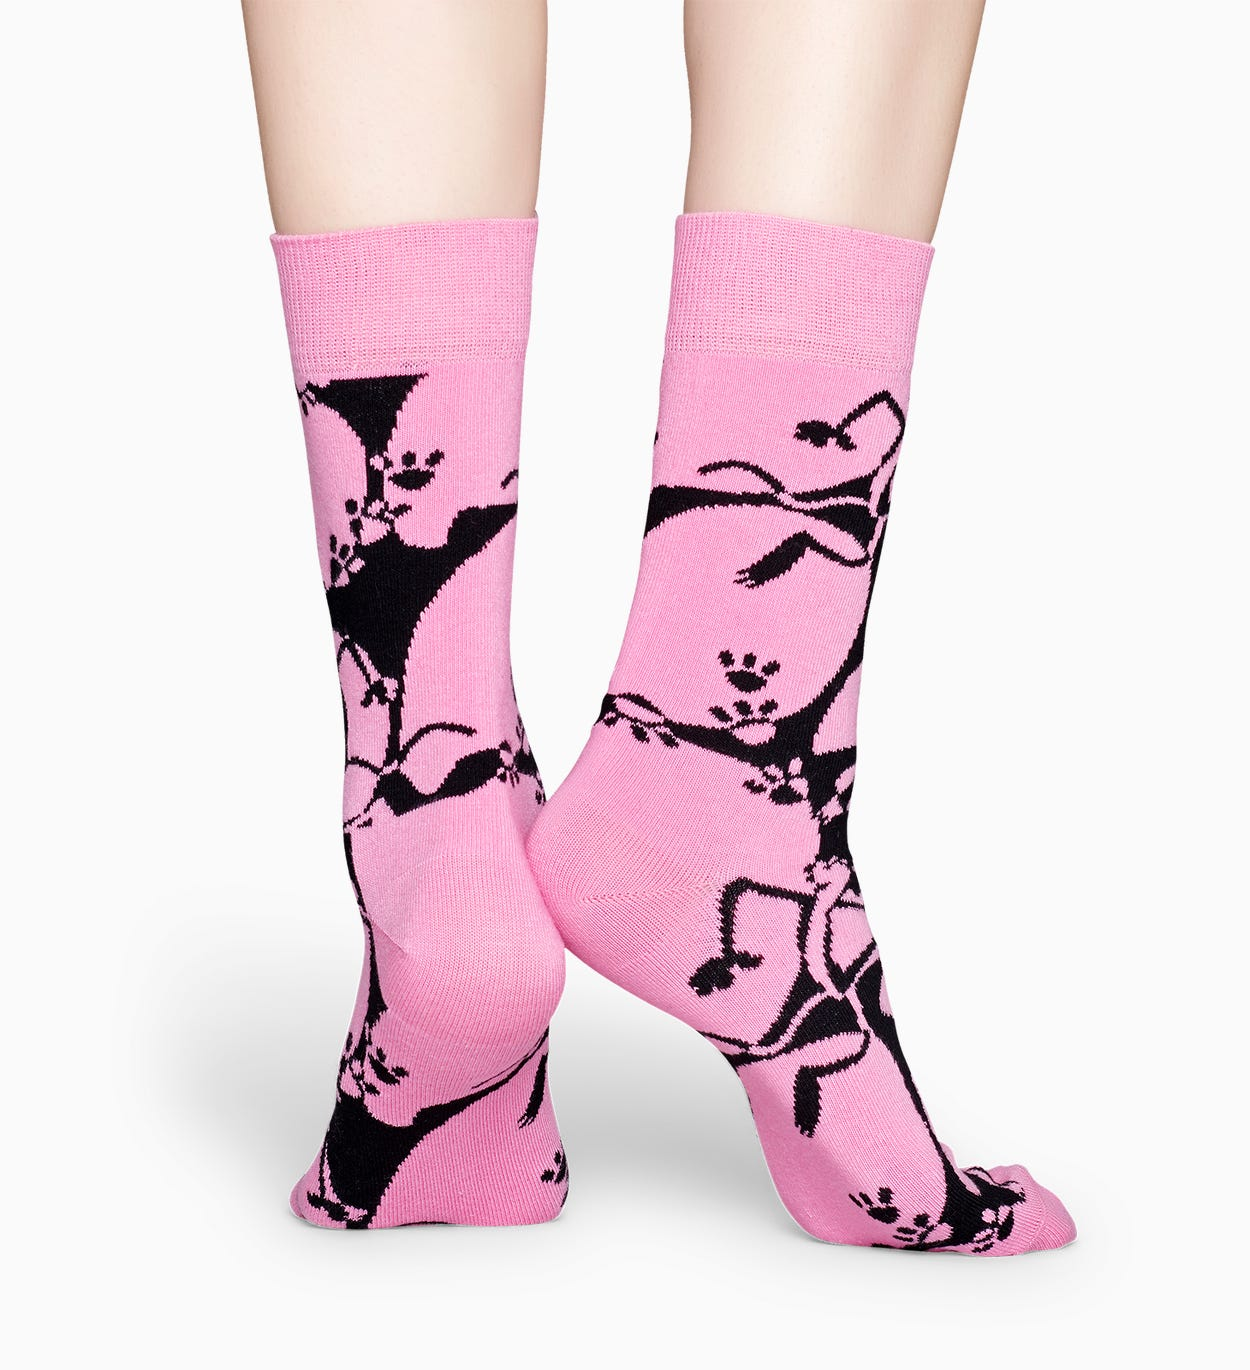 Happy Socks x Pink Panther: Pink-A-Boo 양말